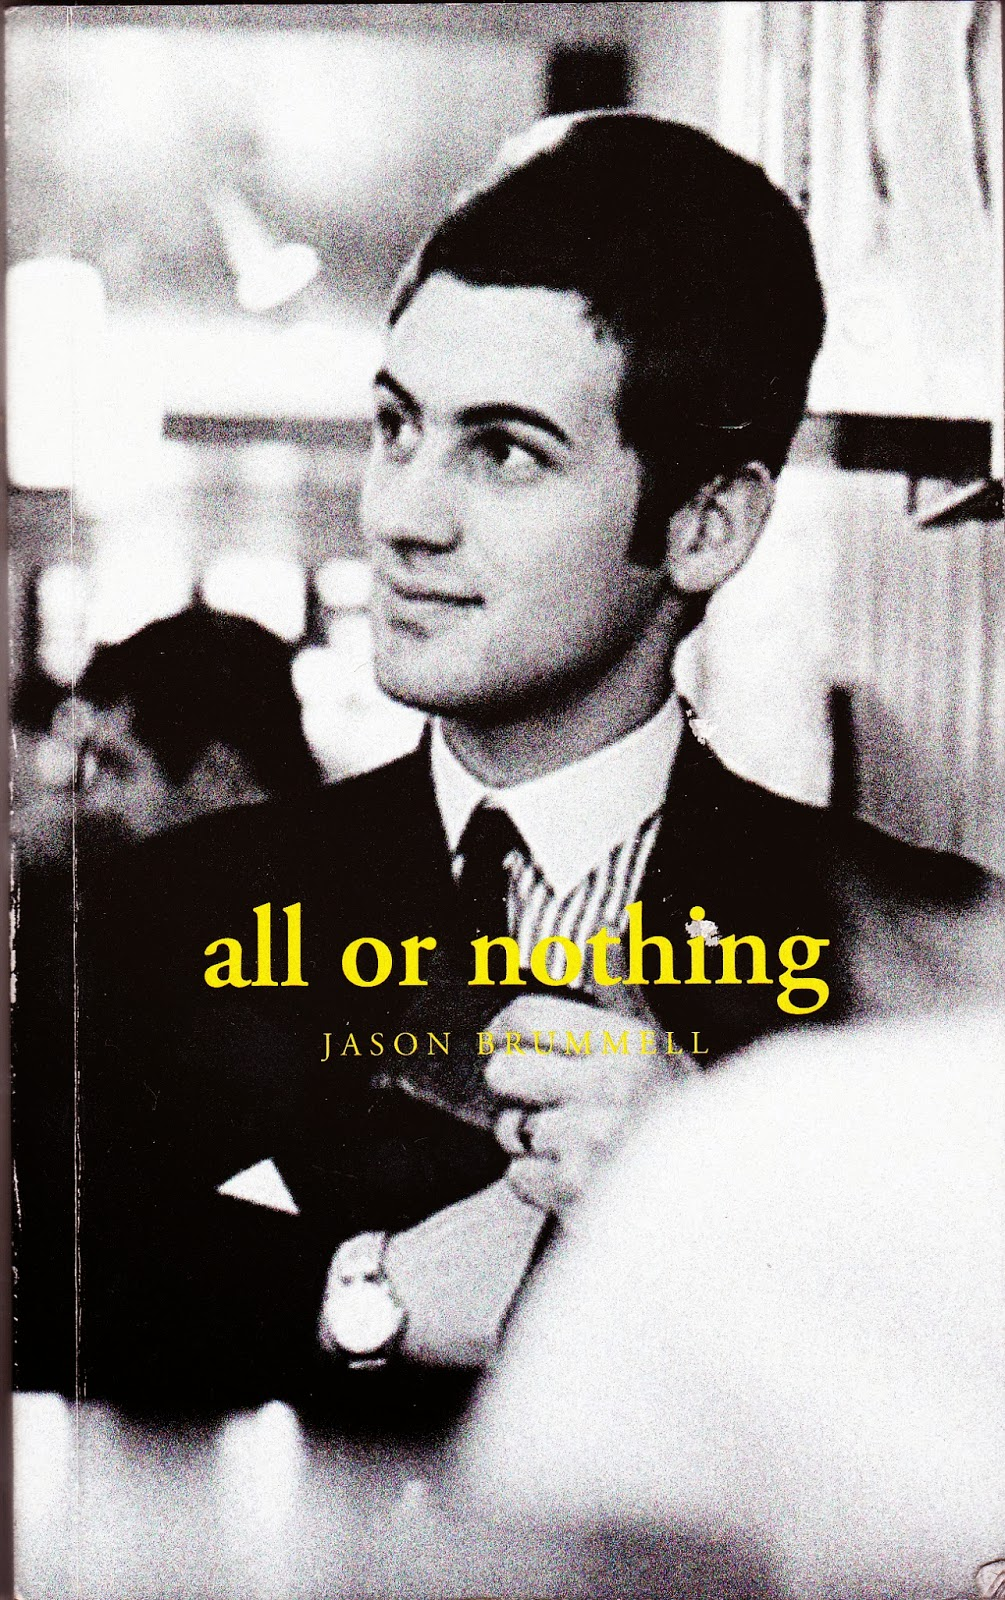 All or Nothing Jason Brummell House of Suave